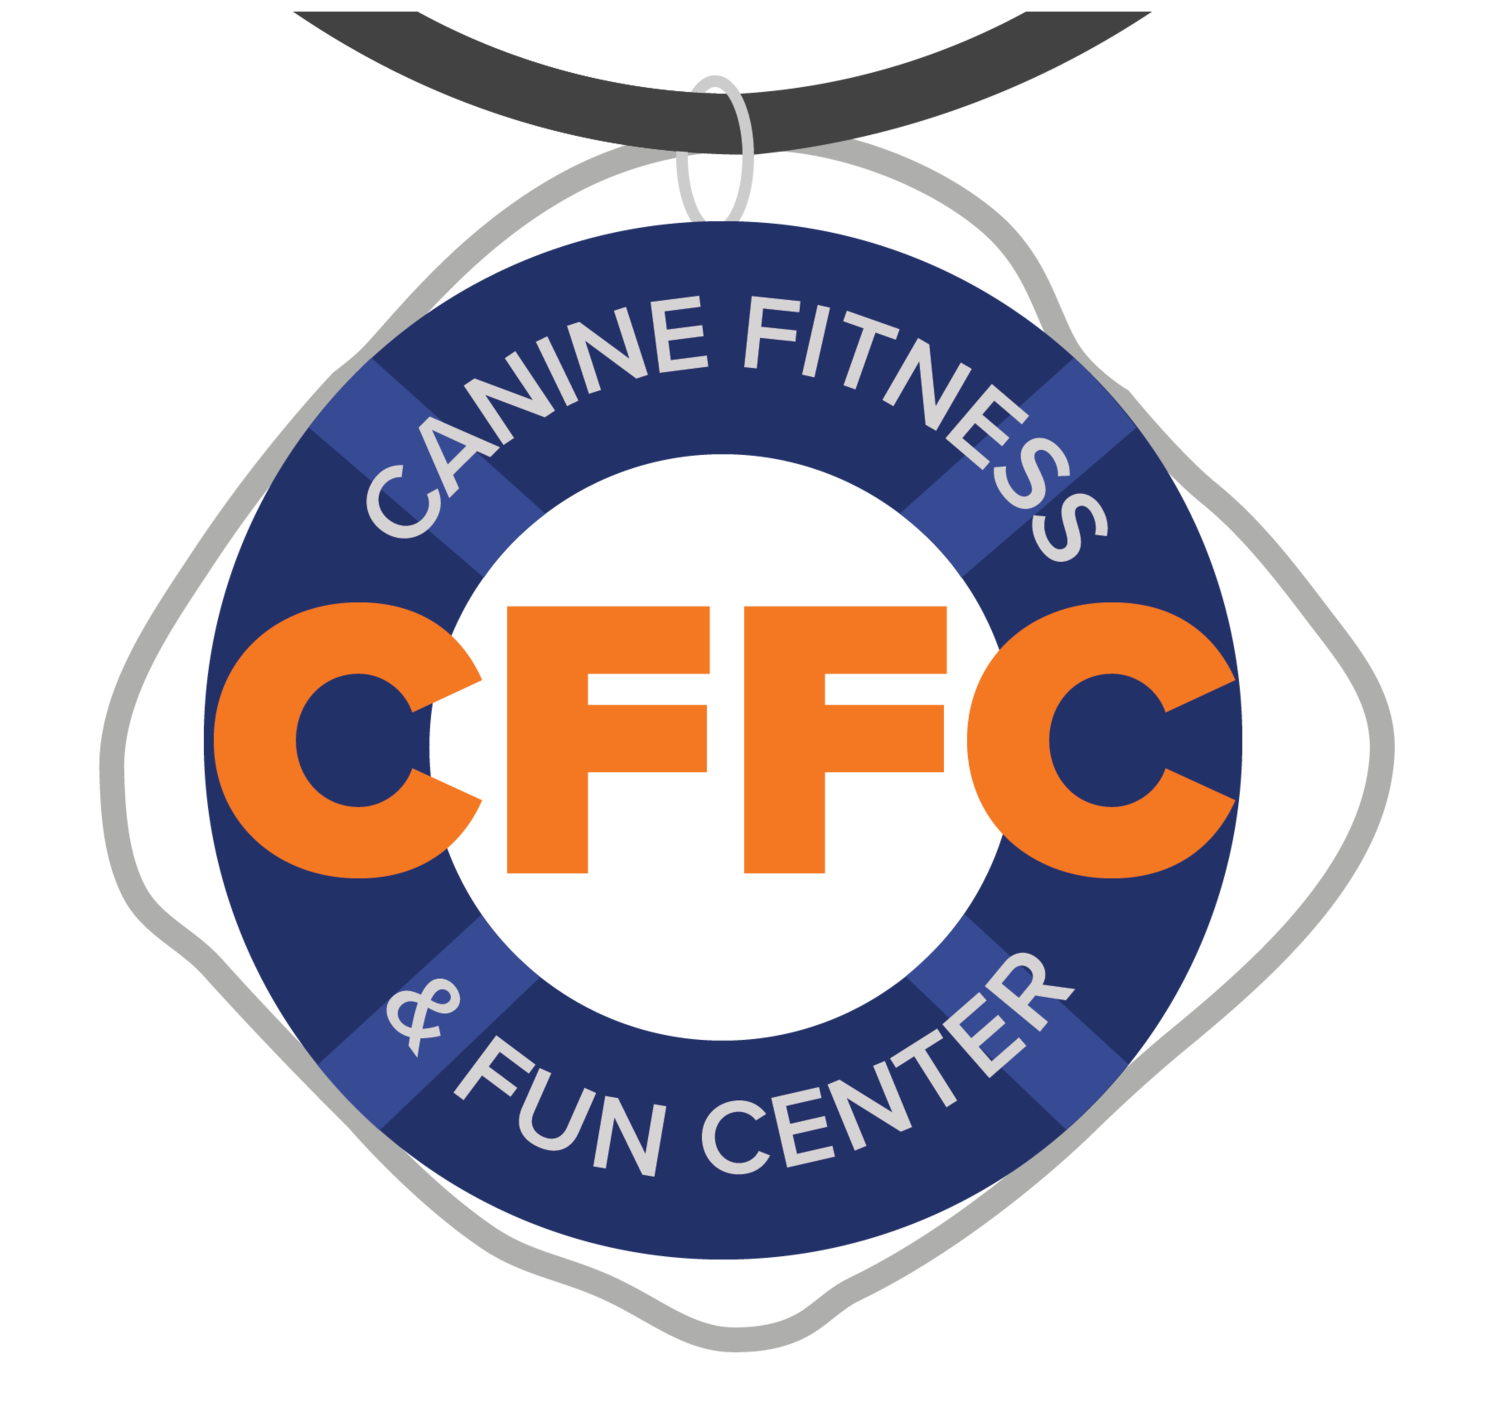 Canine Fitness And Fun